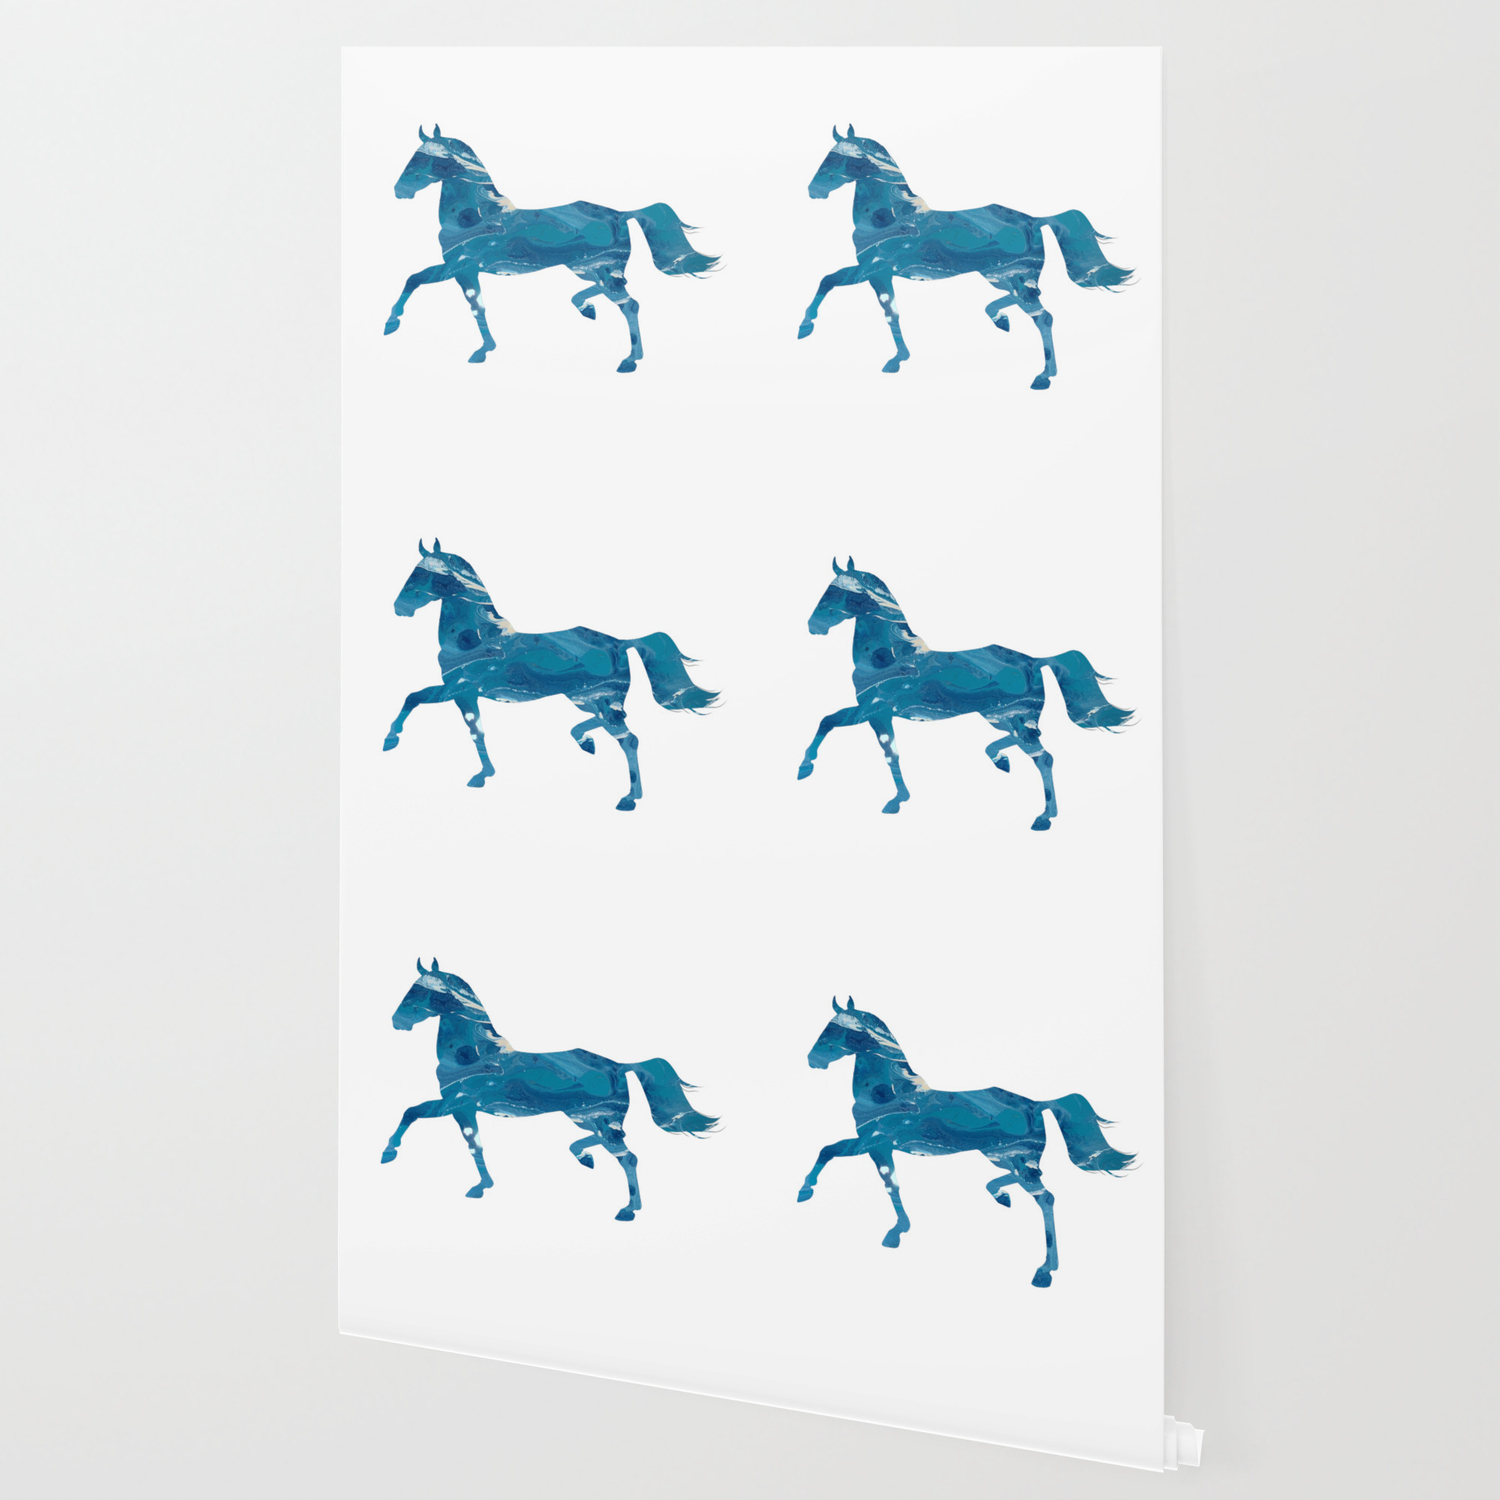 Light Blue Marble Akhal Teke Horse Silhouette Wallpaper By Luxehurricane Society6